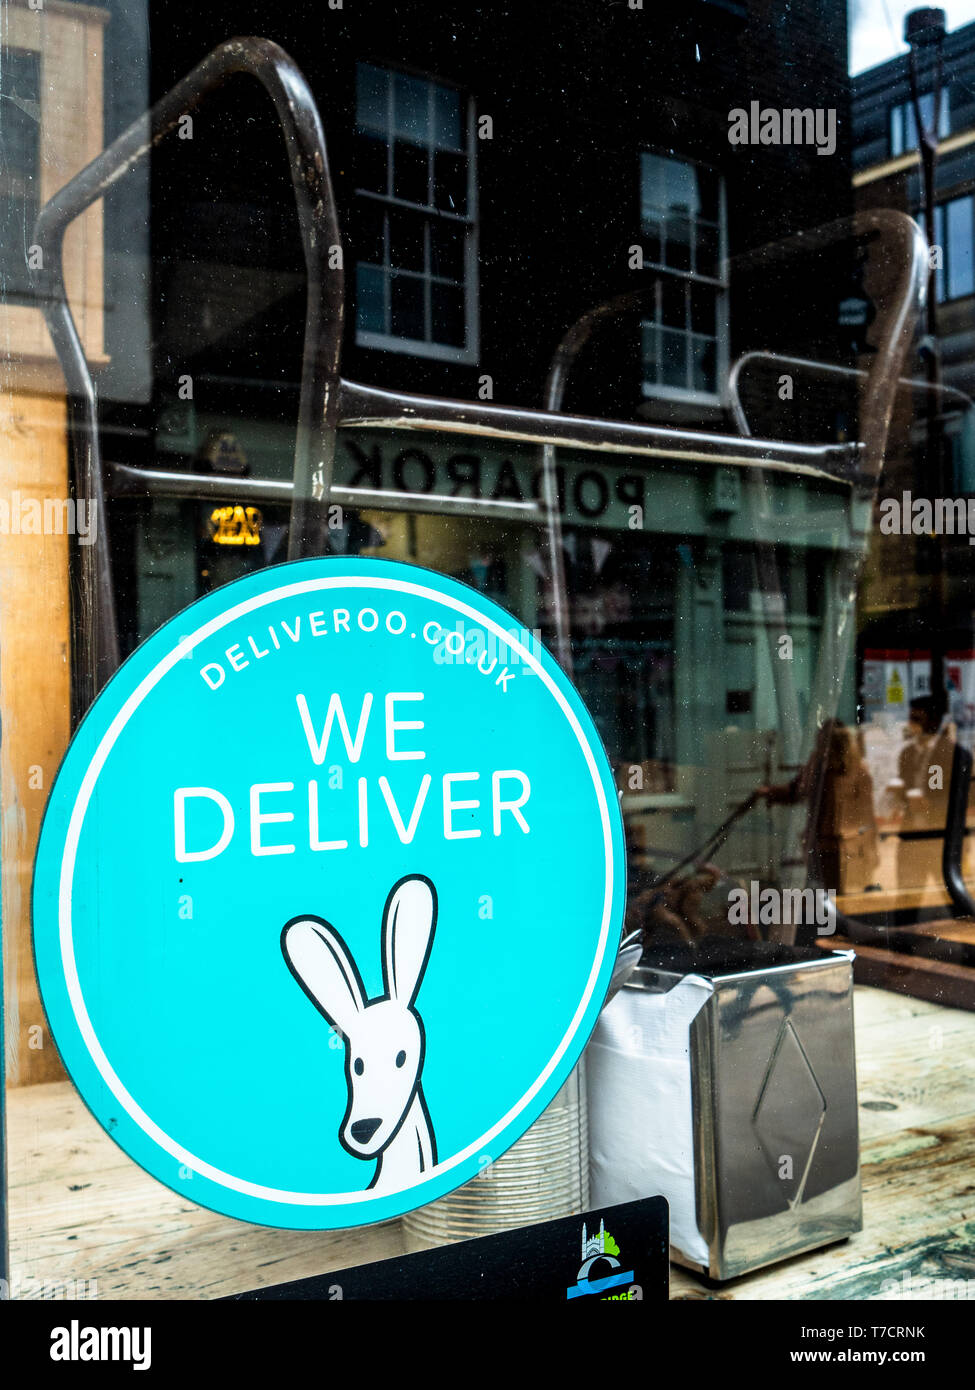 Deliveroo We Deliver sticker in the window of a restaurant in Cambridge UK - Stock Image